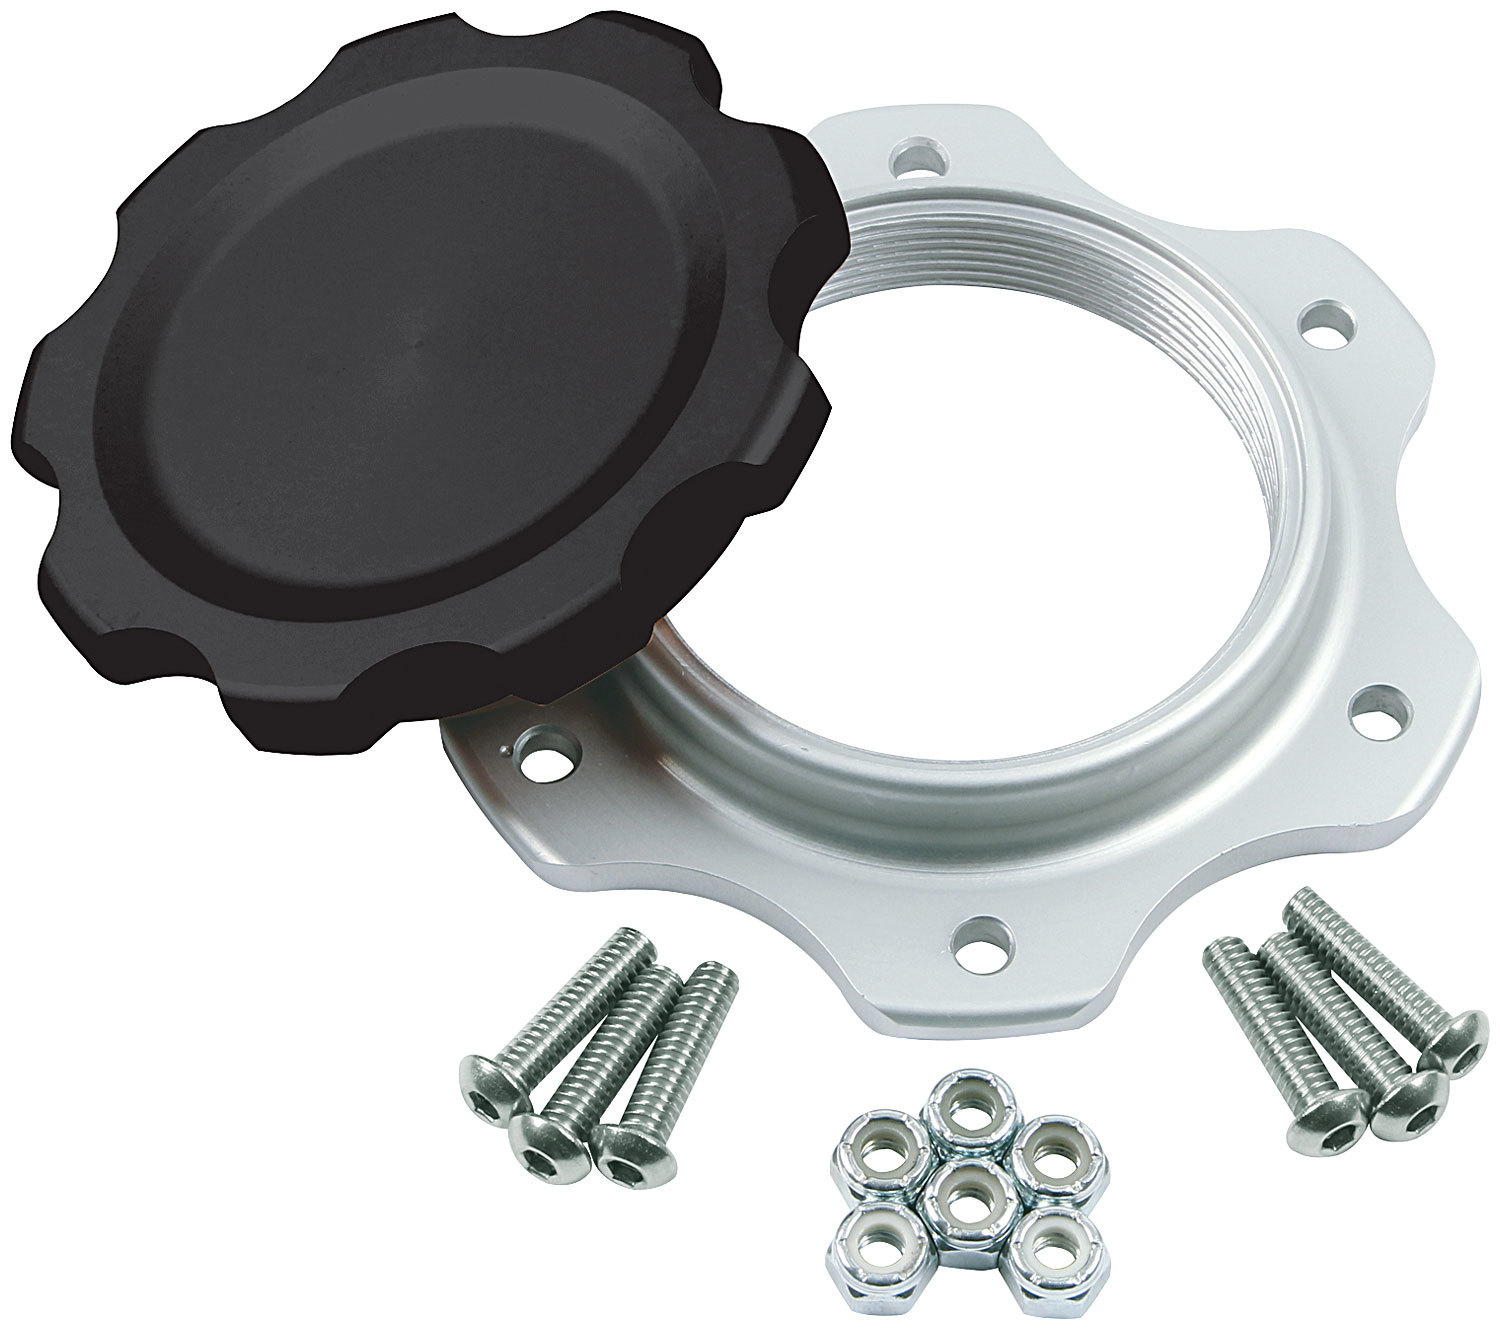 Allstar Performance 40137 Fuel Cell Filler Cap, Screw-On, Aluminum, Black Anodize, 6-Bolt JAZ Fuel Cells, Each